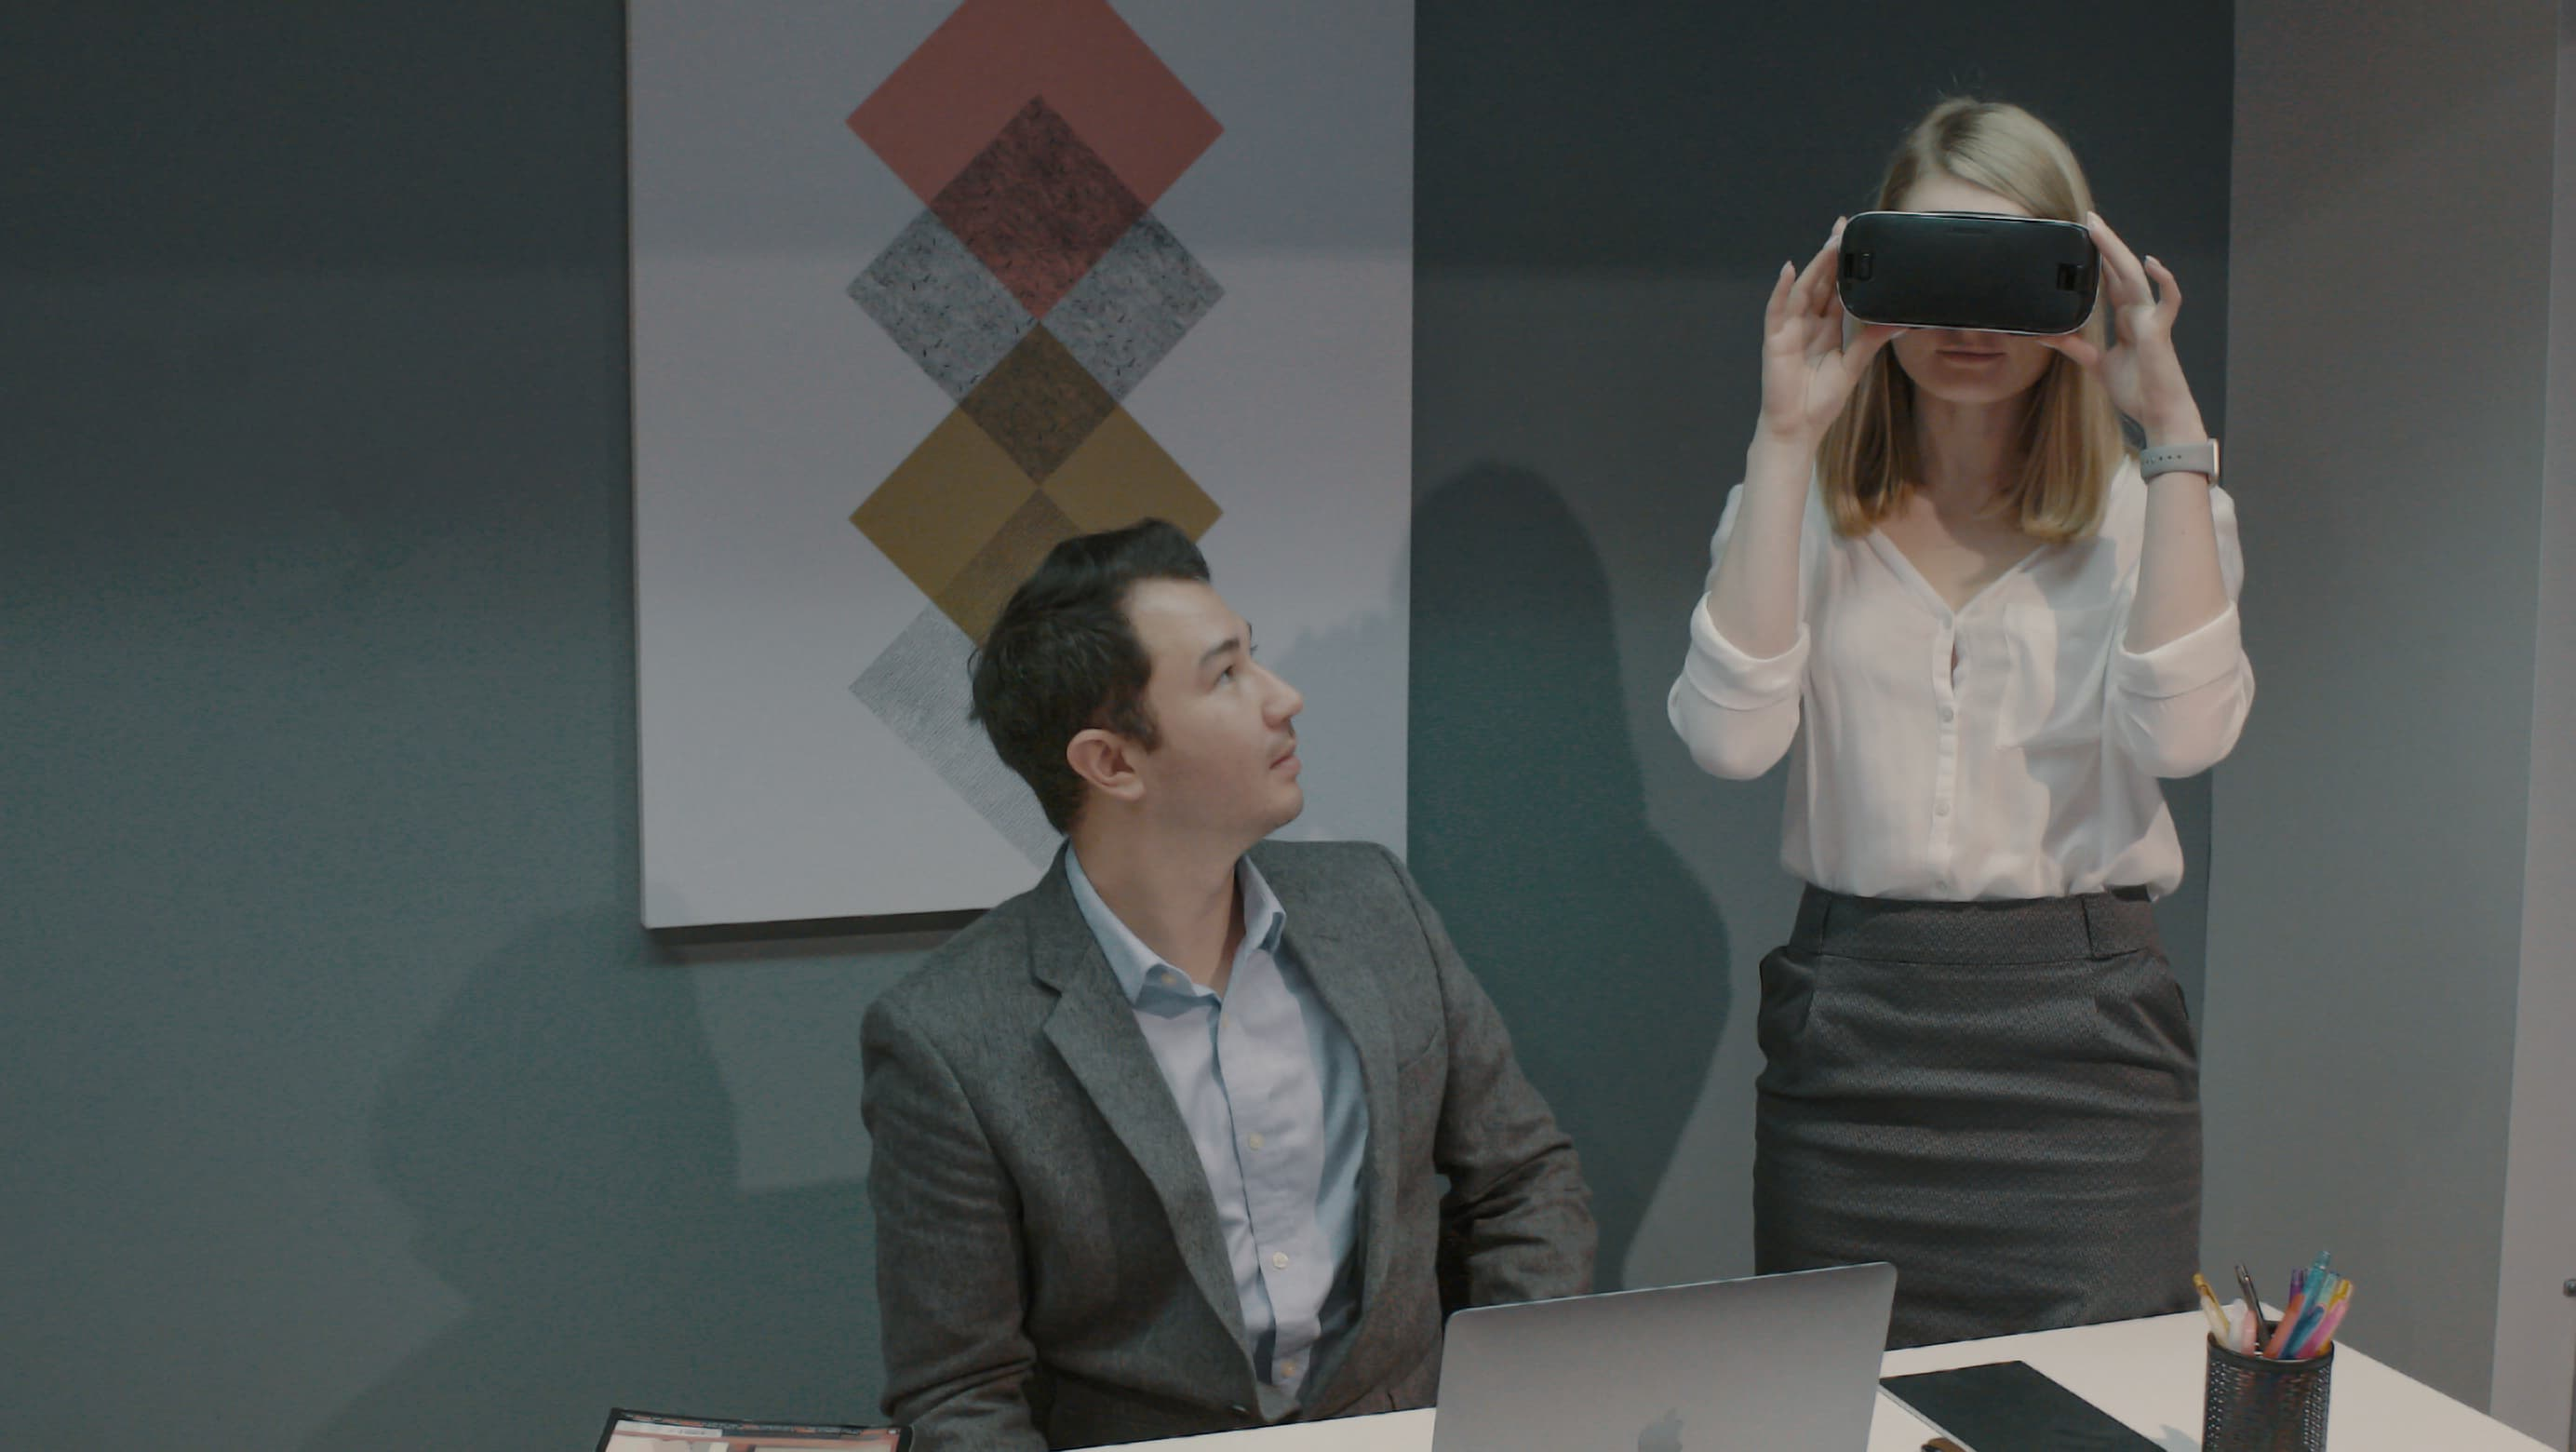 Using VR in meeting with clients